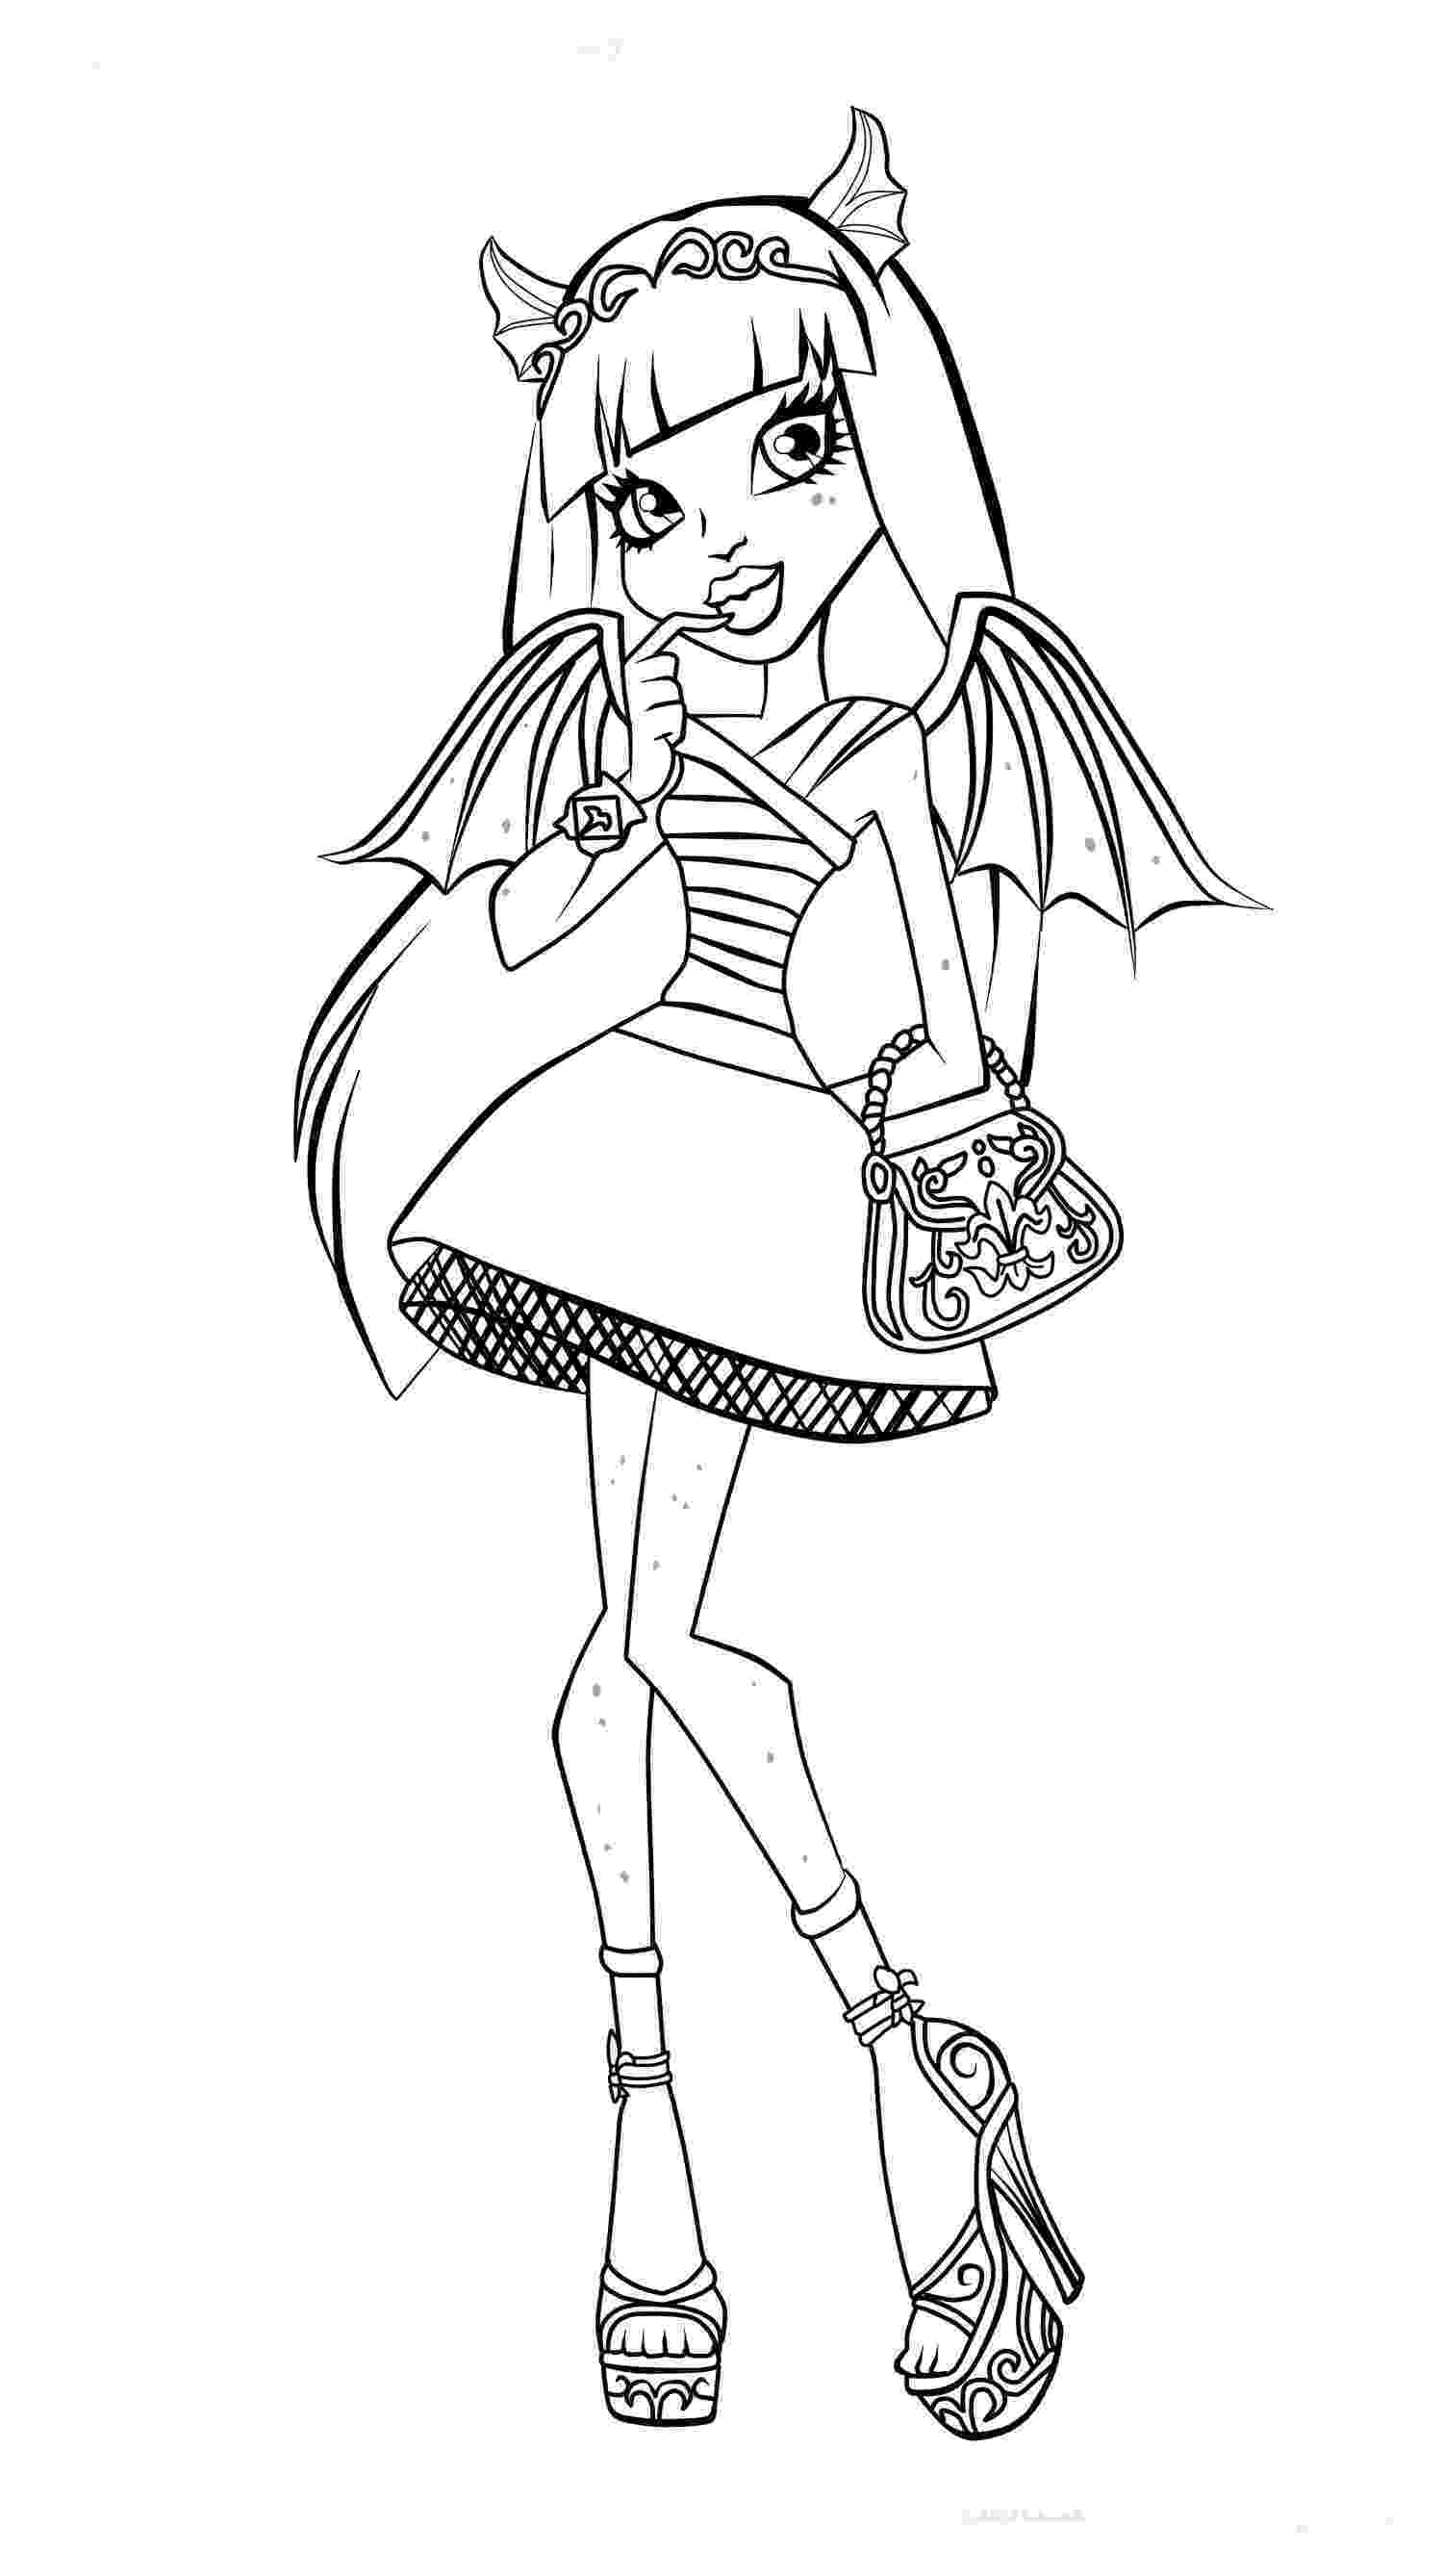 monster high colouring sheets free printable monster high coloring pages for kids monster sheets high colouring